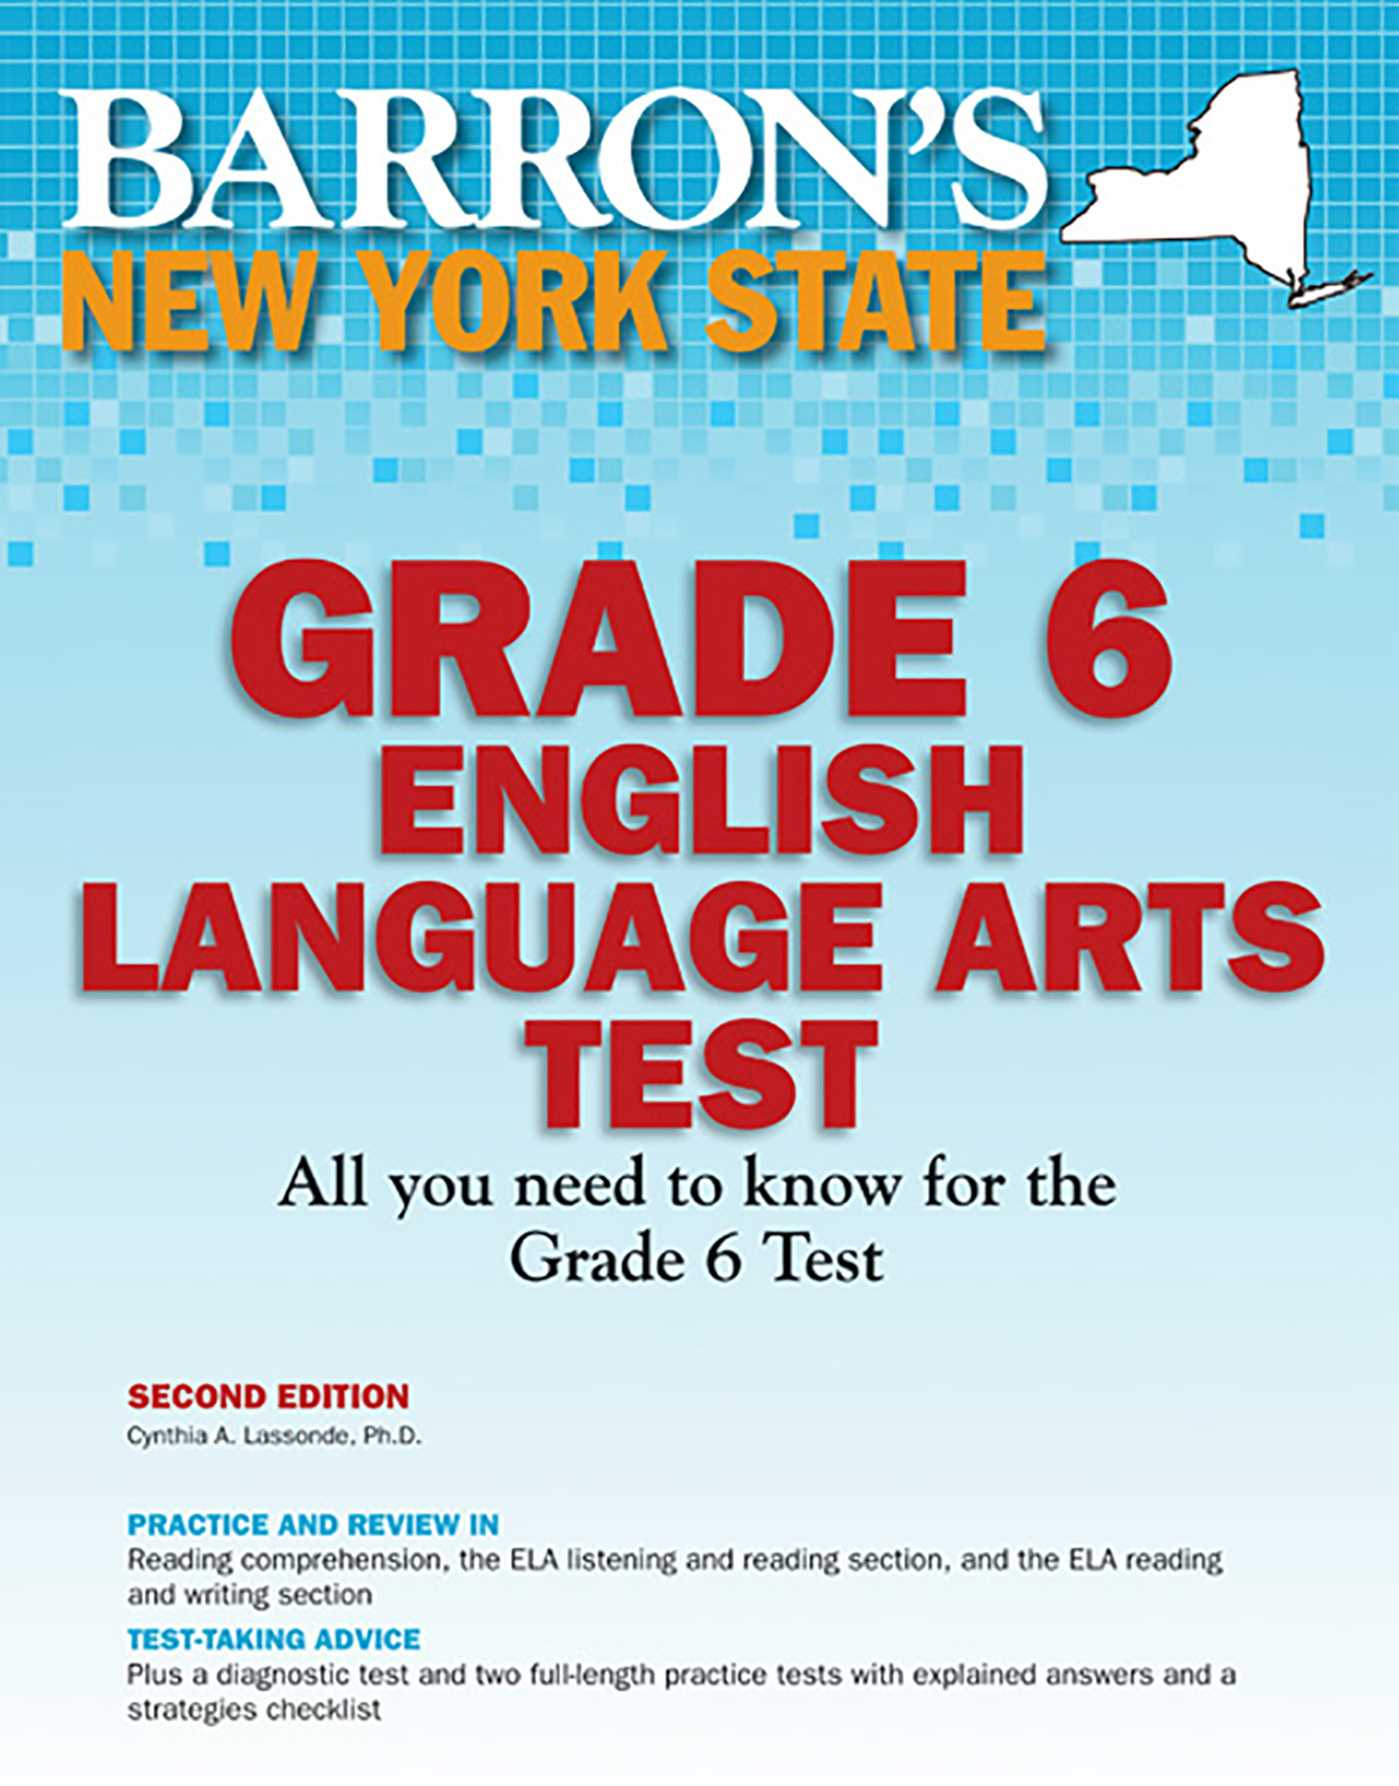 Book Cover Image (jpg): Barron's New York State Grade 6 English Language  Arts Test. Second Edition Trade Paperback 9781438001944